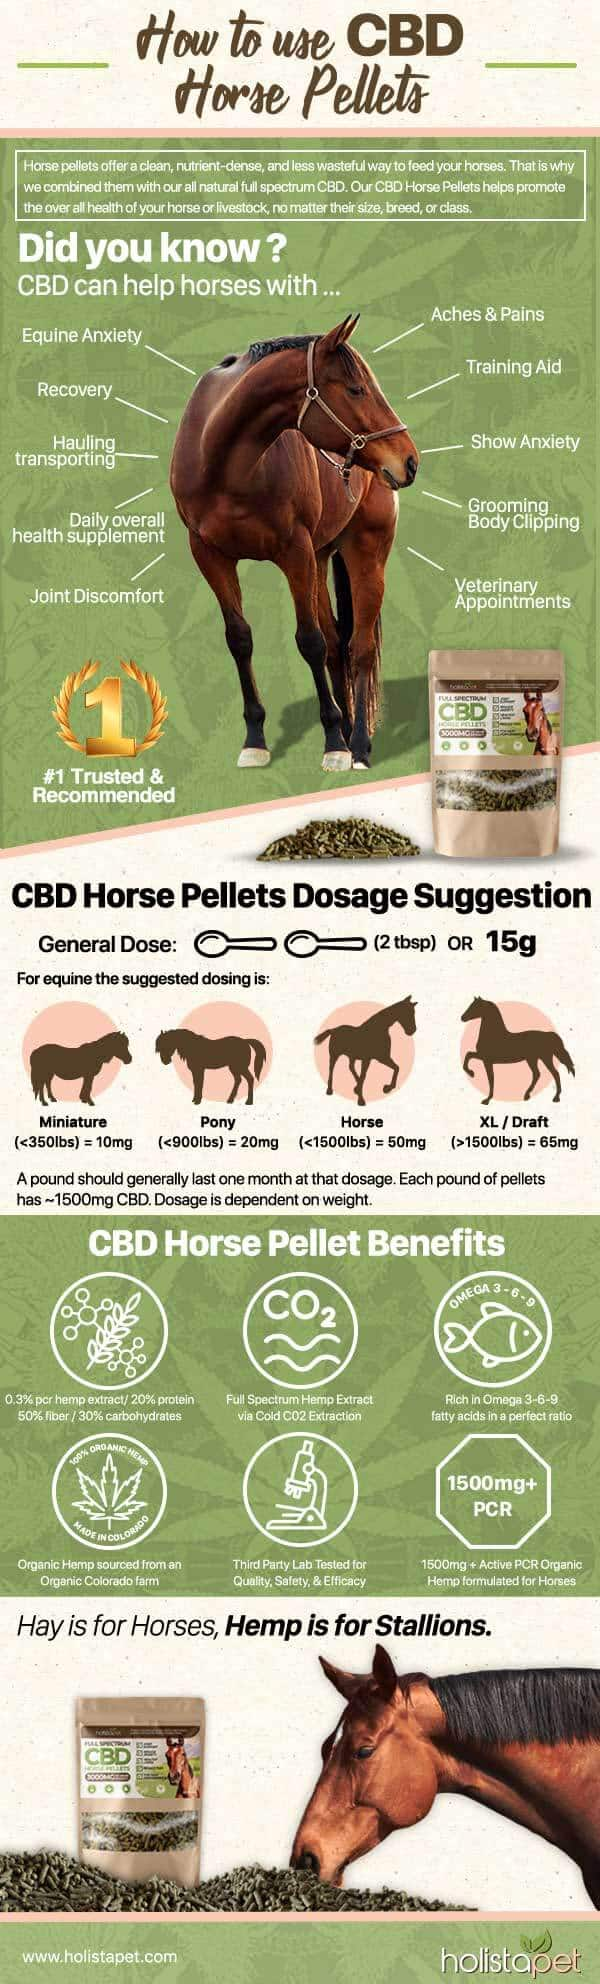 How to use CBD horse pellets with your horse